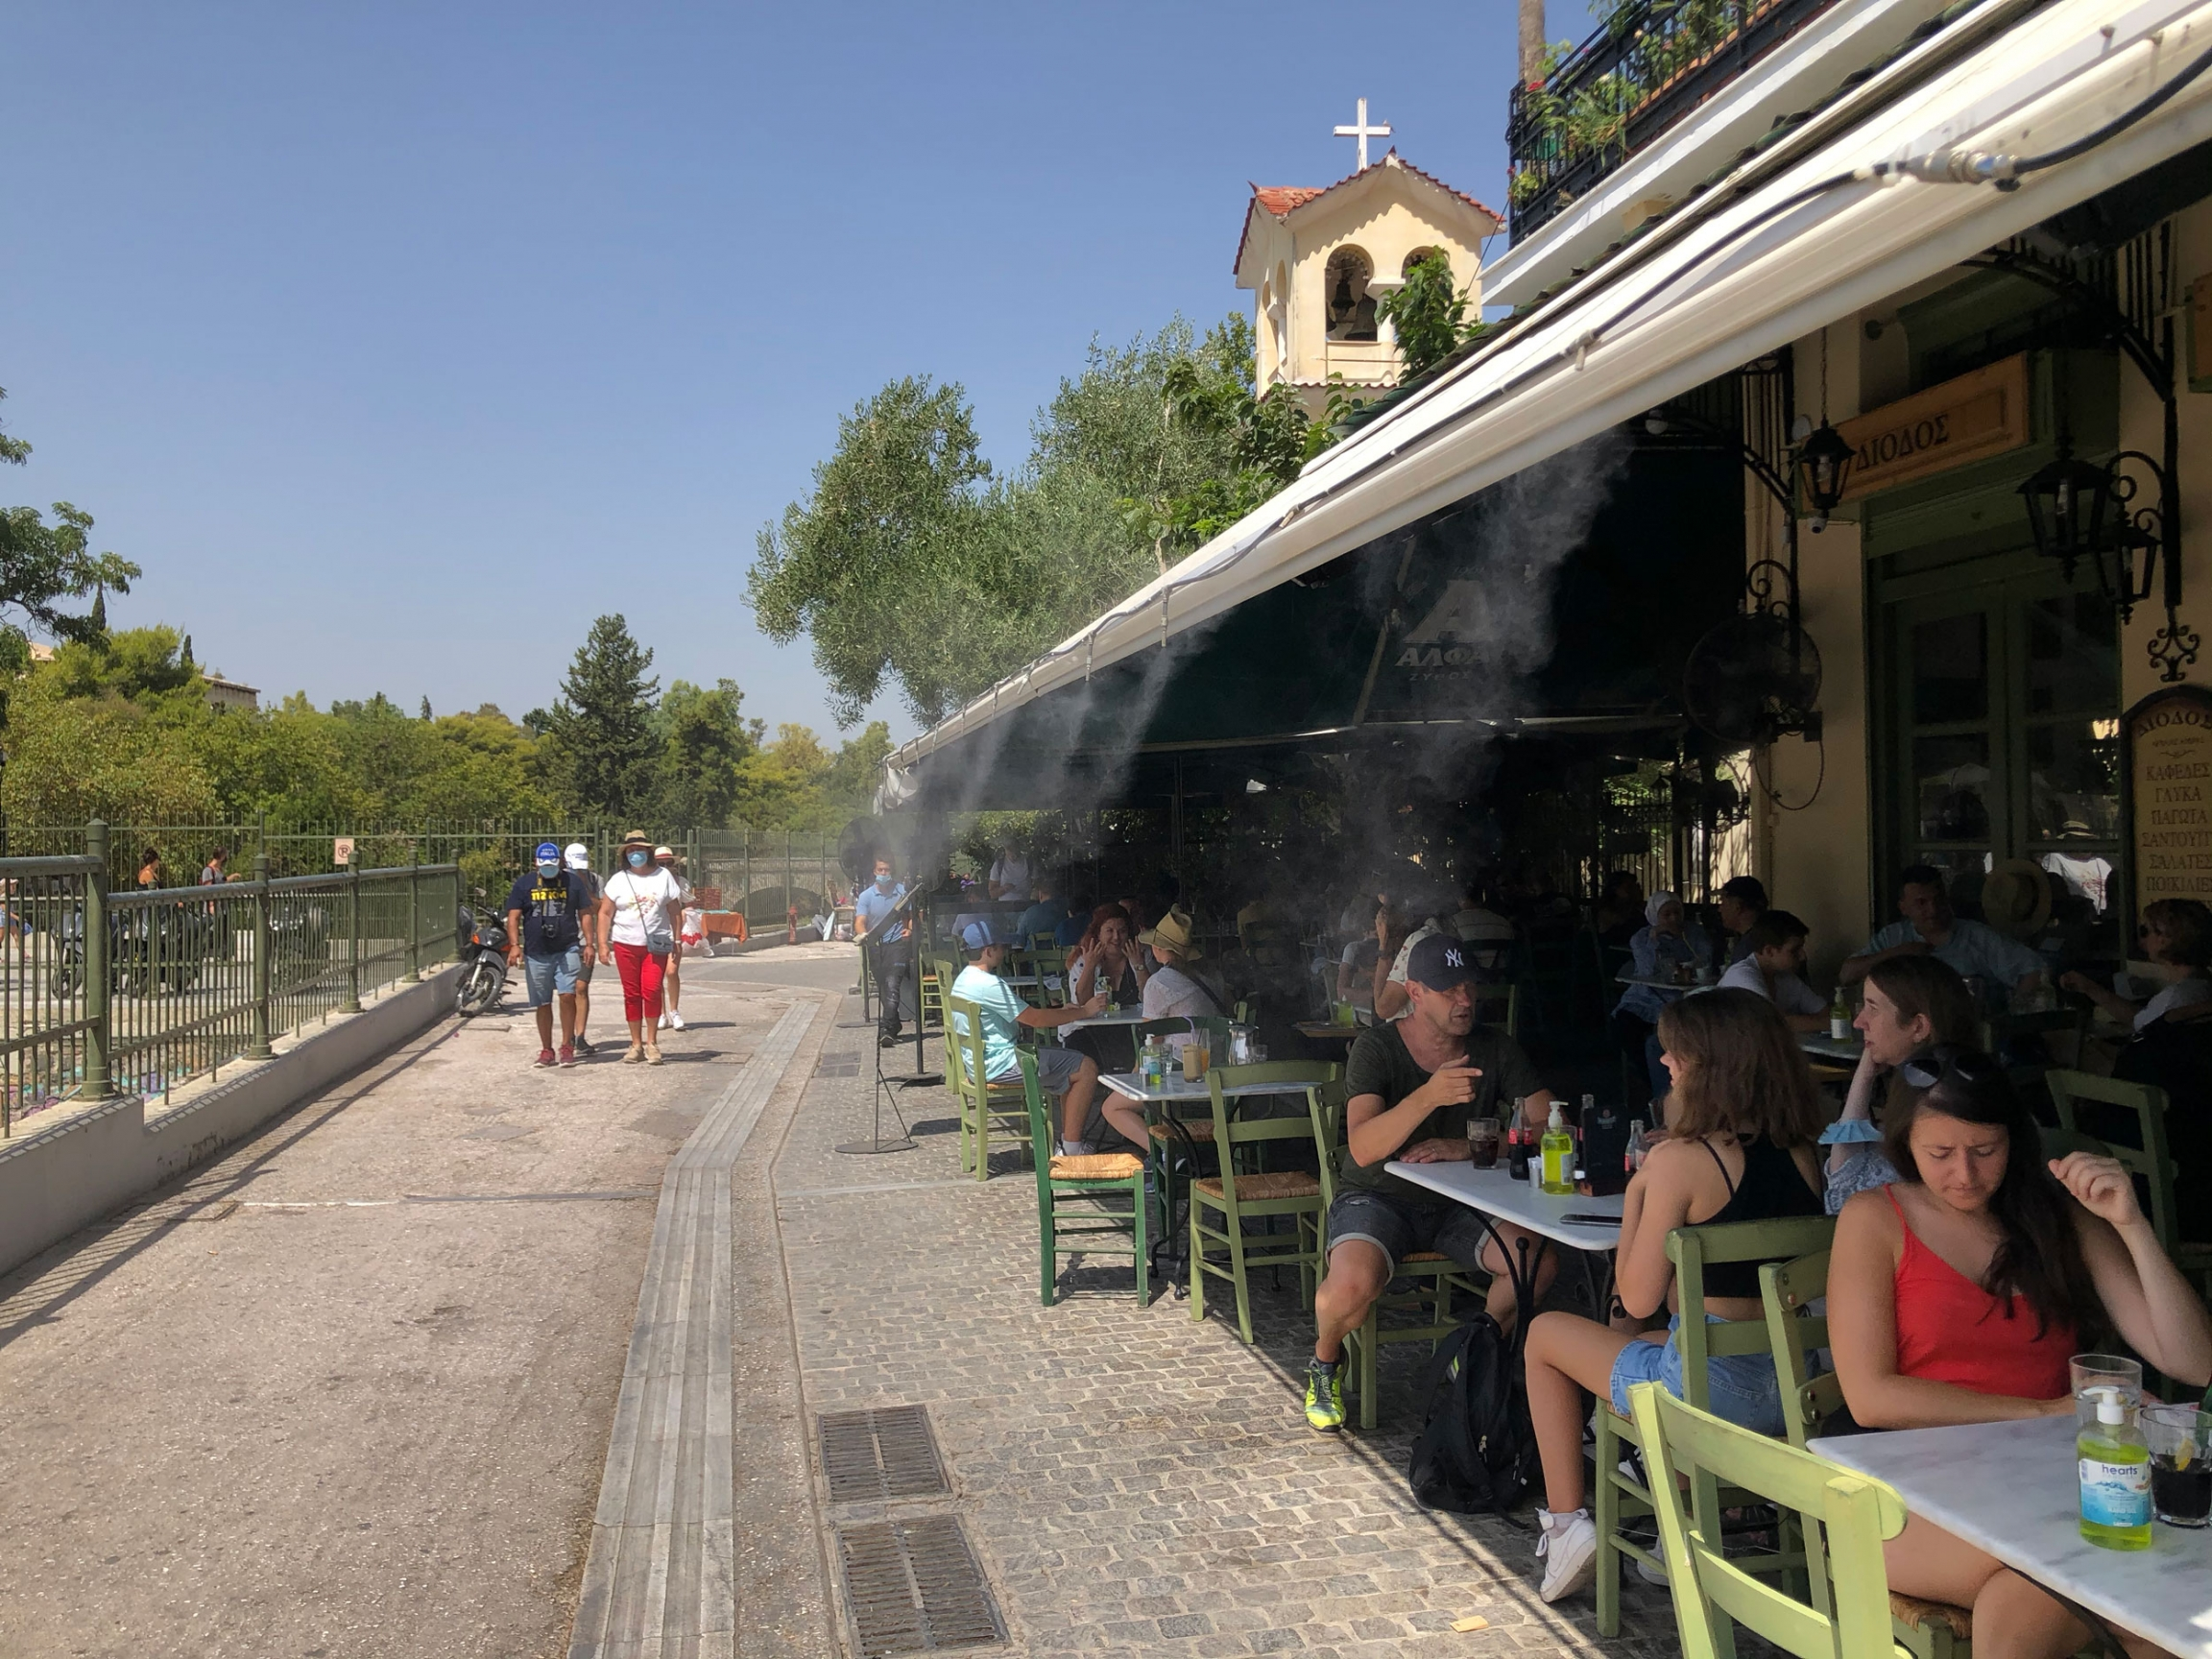 Patrons of a open-air restaurant are shown with several spigots at the roof line spraying mist.